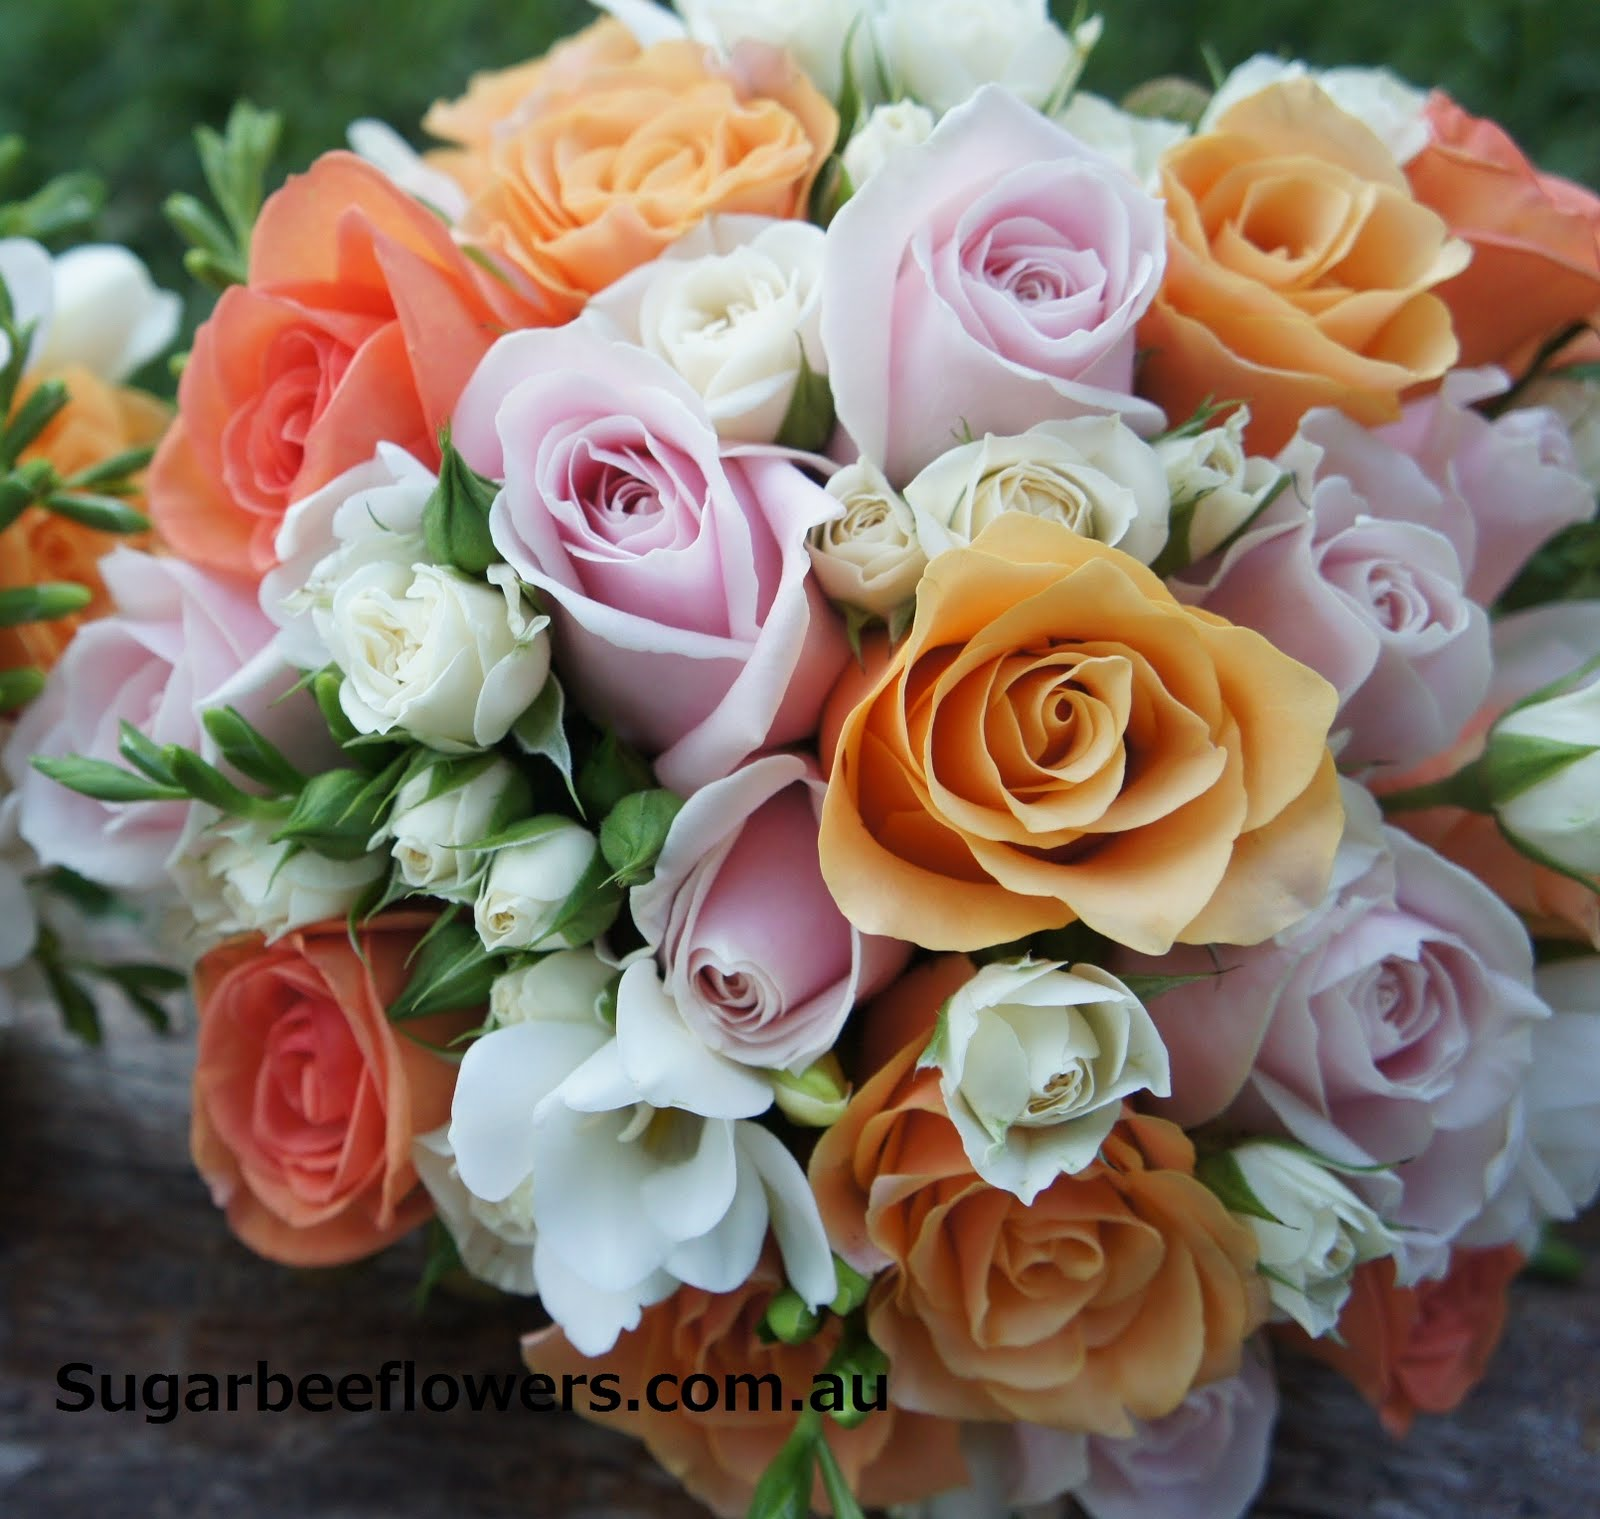 Sugar bee flowers orange pink white wedding flowers orange pink white wedding flowers mightylinksfo